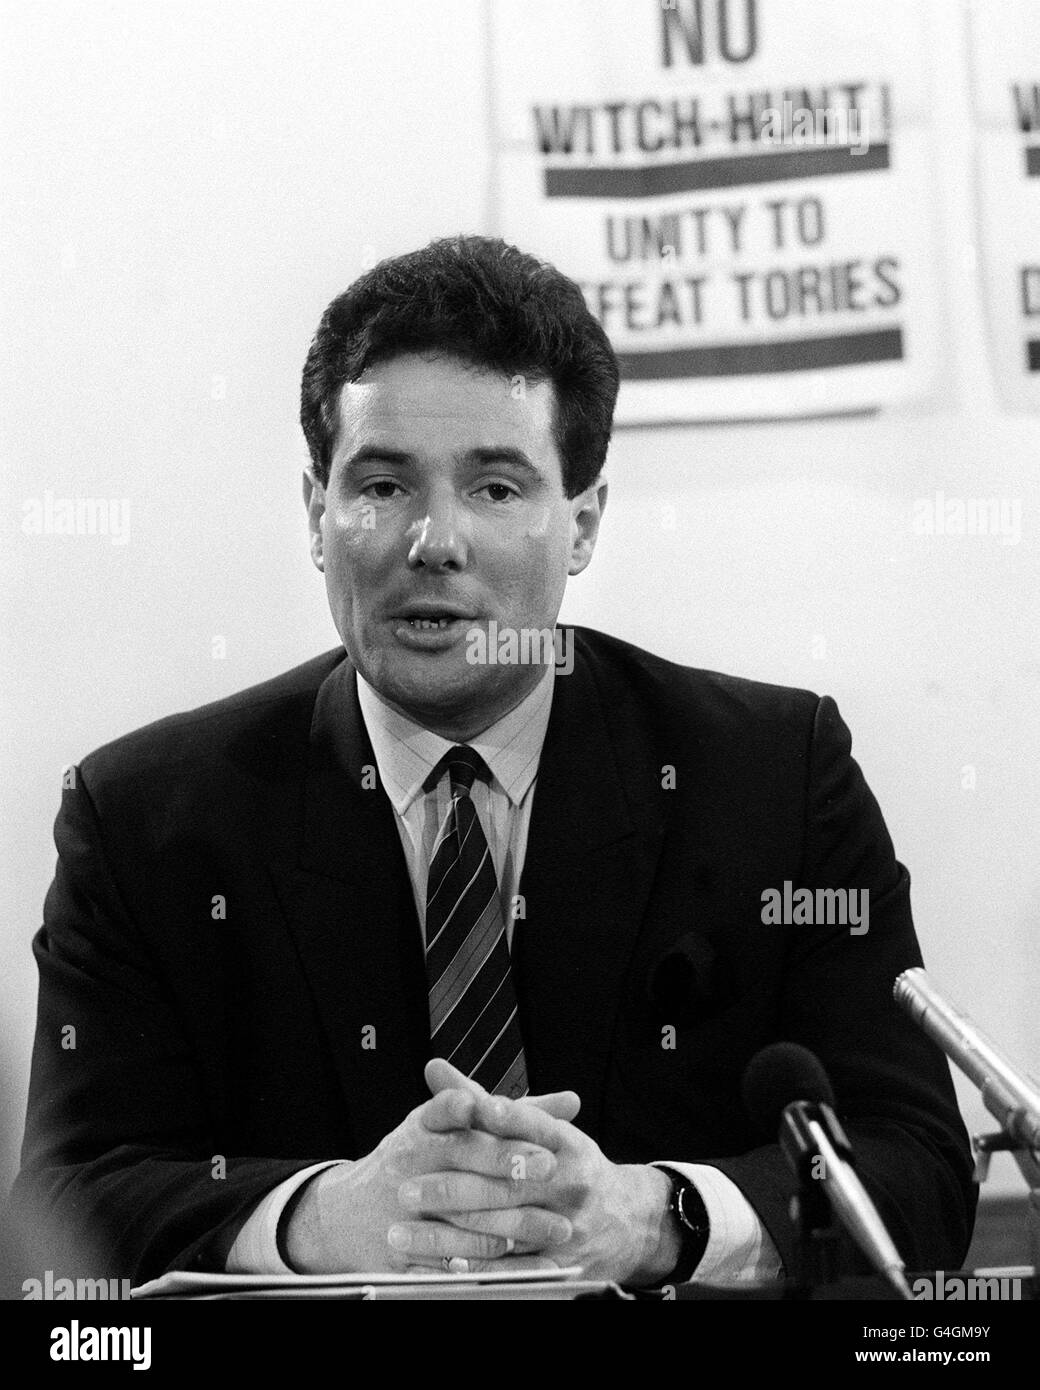 Derek Hatton High Resolution Stock Photography And Images Alamy